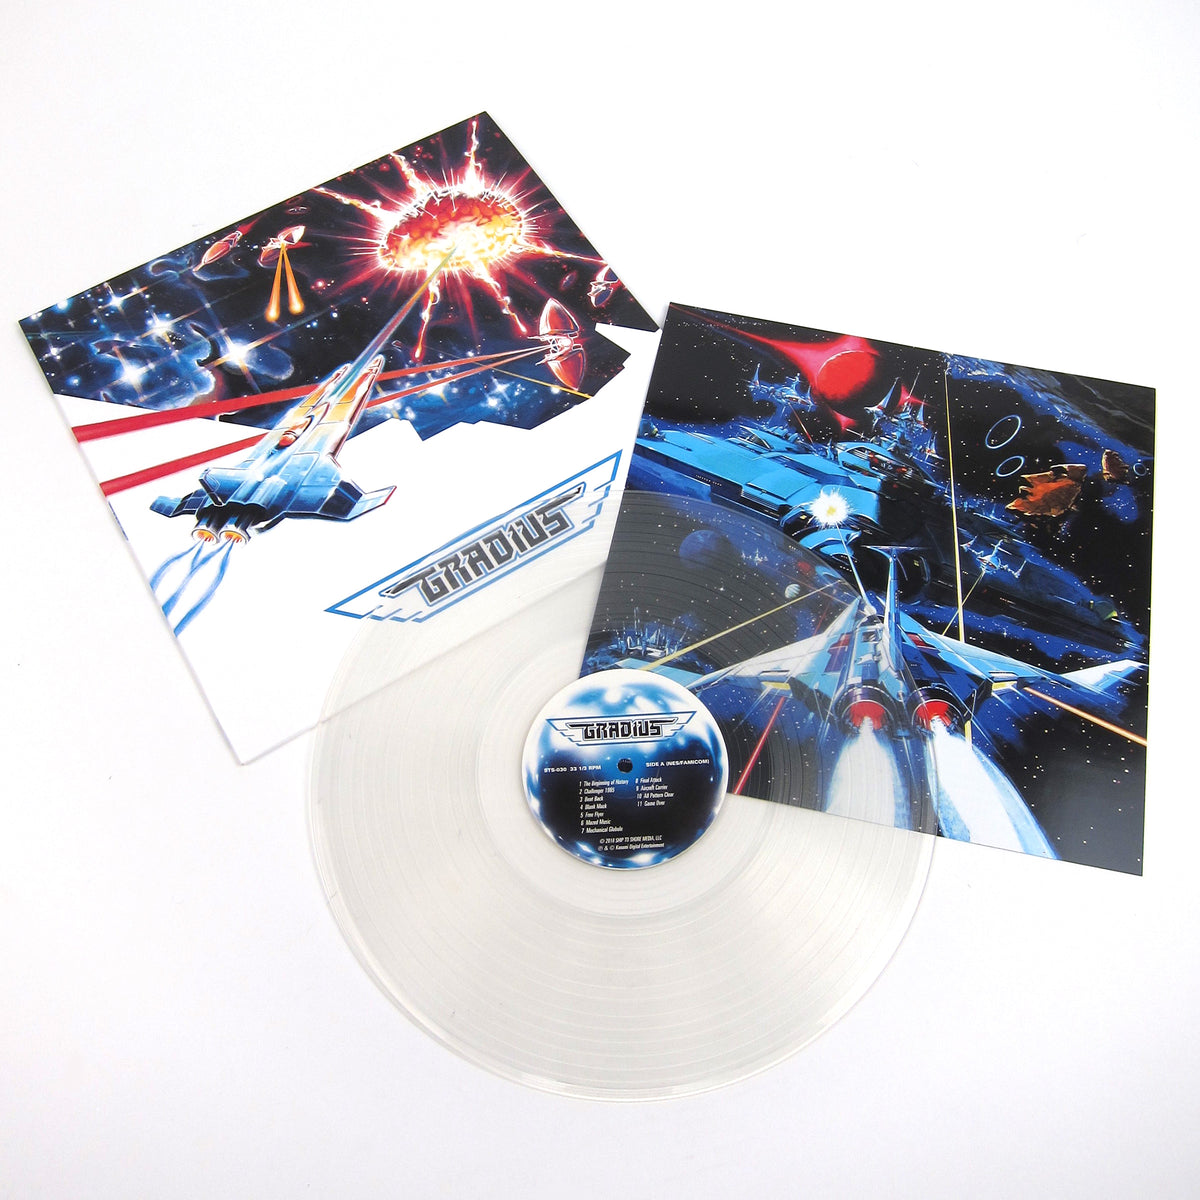 Konami Kukeiha Club: Gradius (Colored Vinyl) Vinyl LP